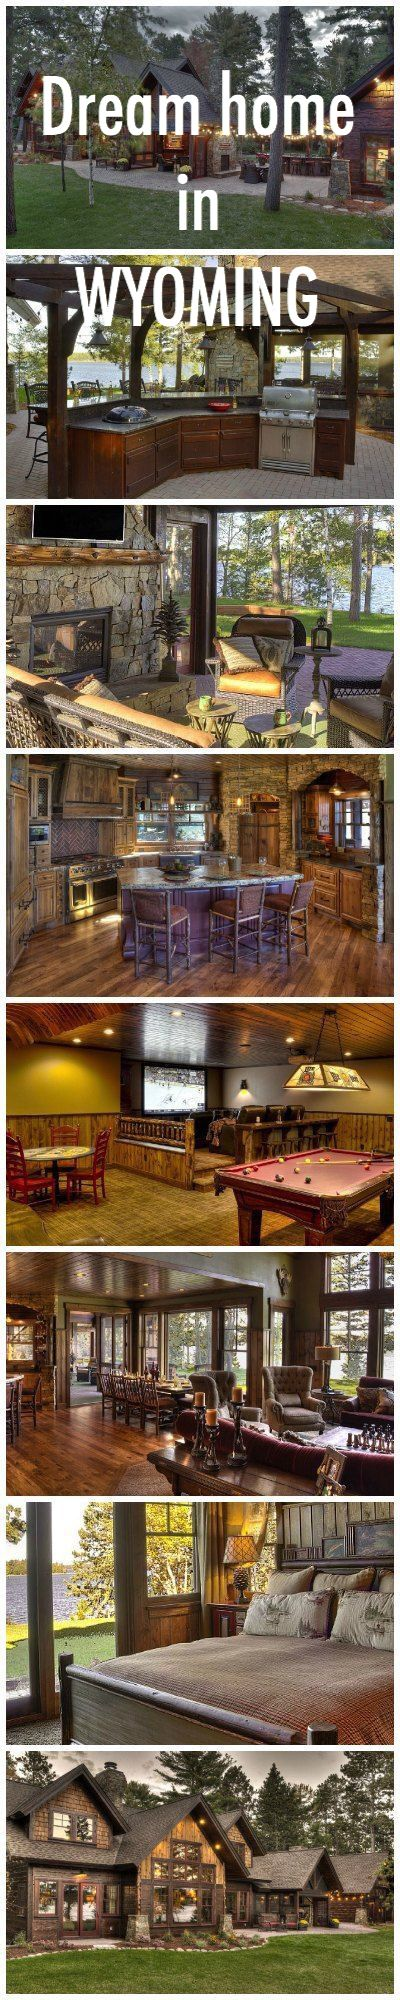 Dream Home in Wyoming